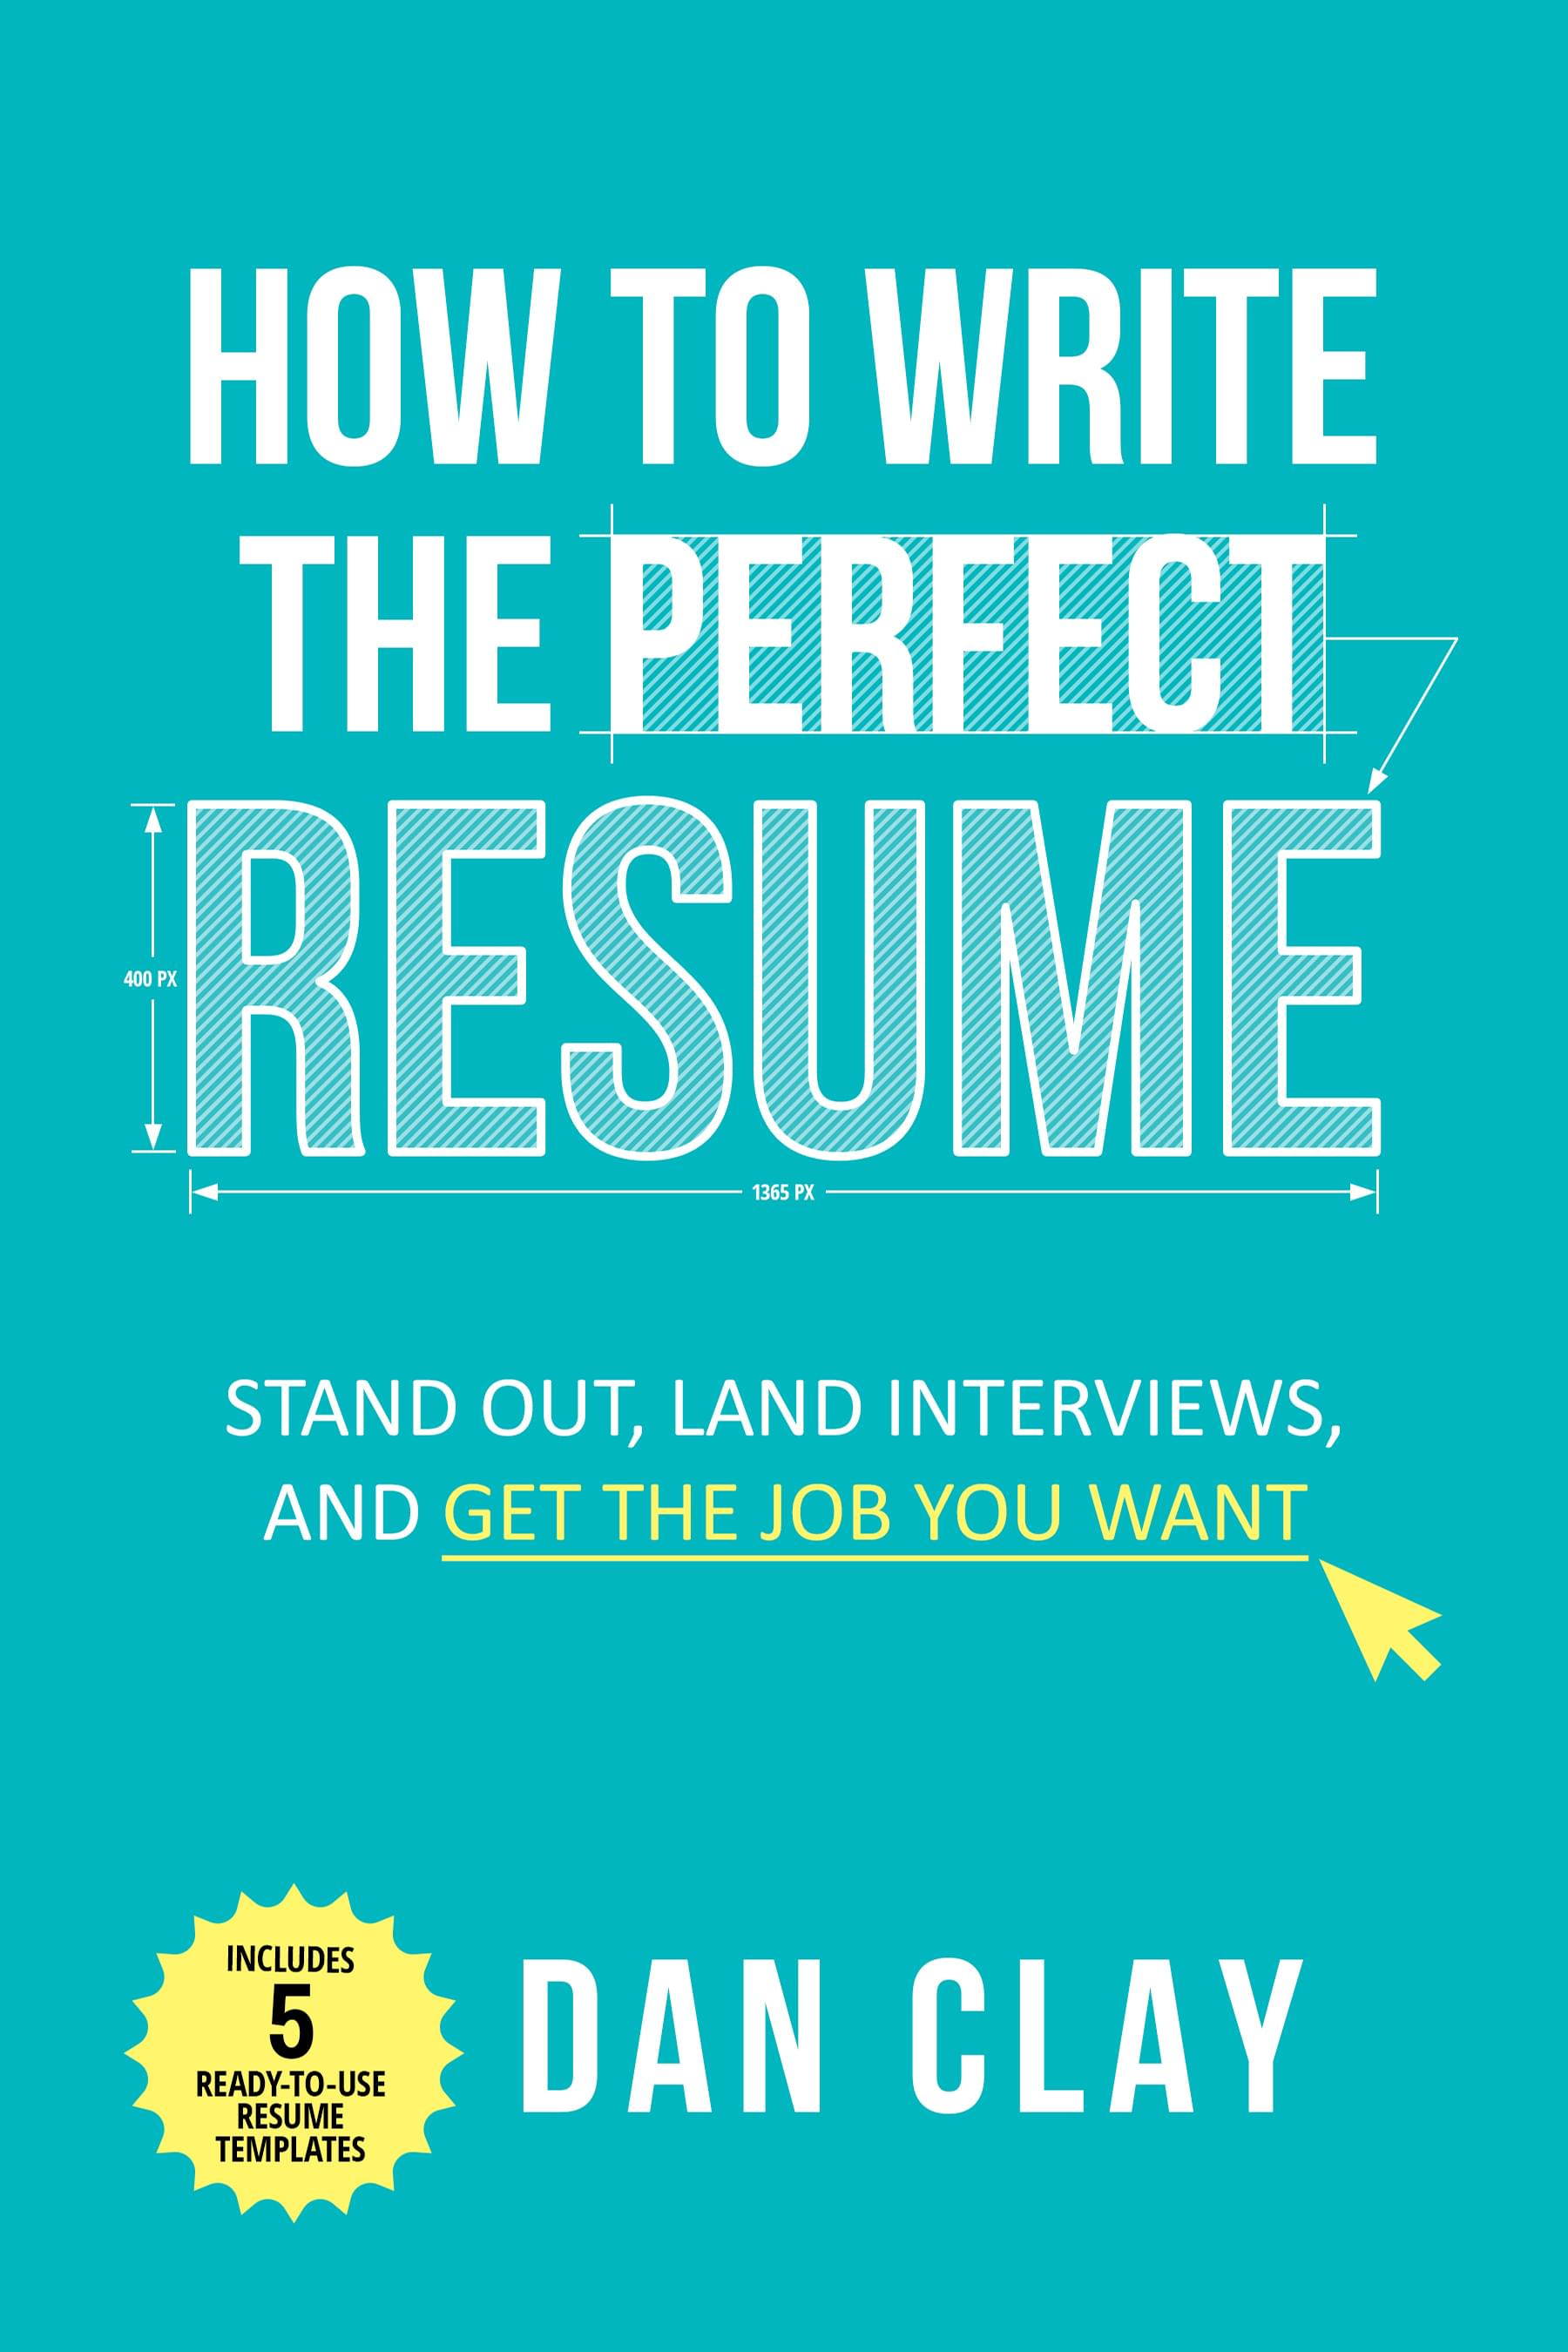 How to Write the Perfect Resume by Dan Clay